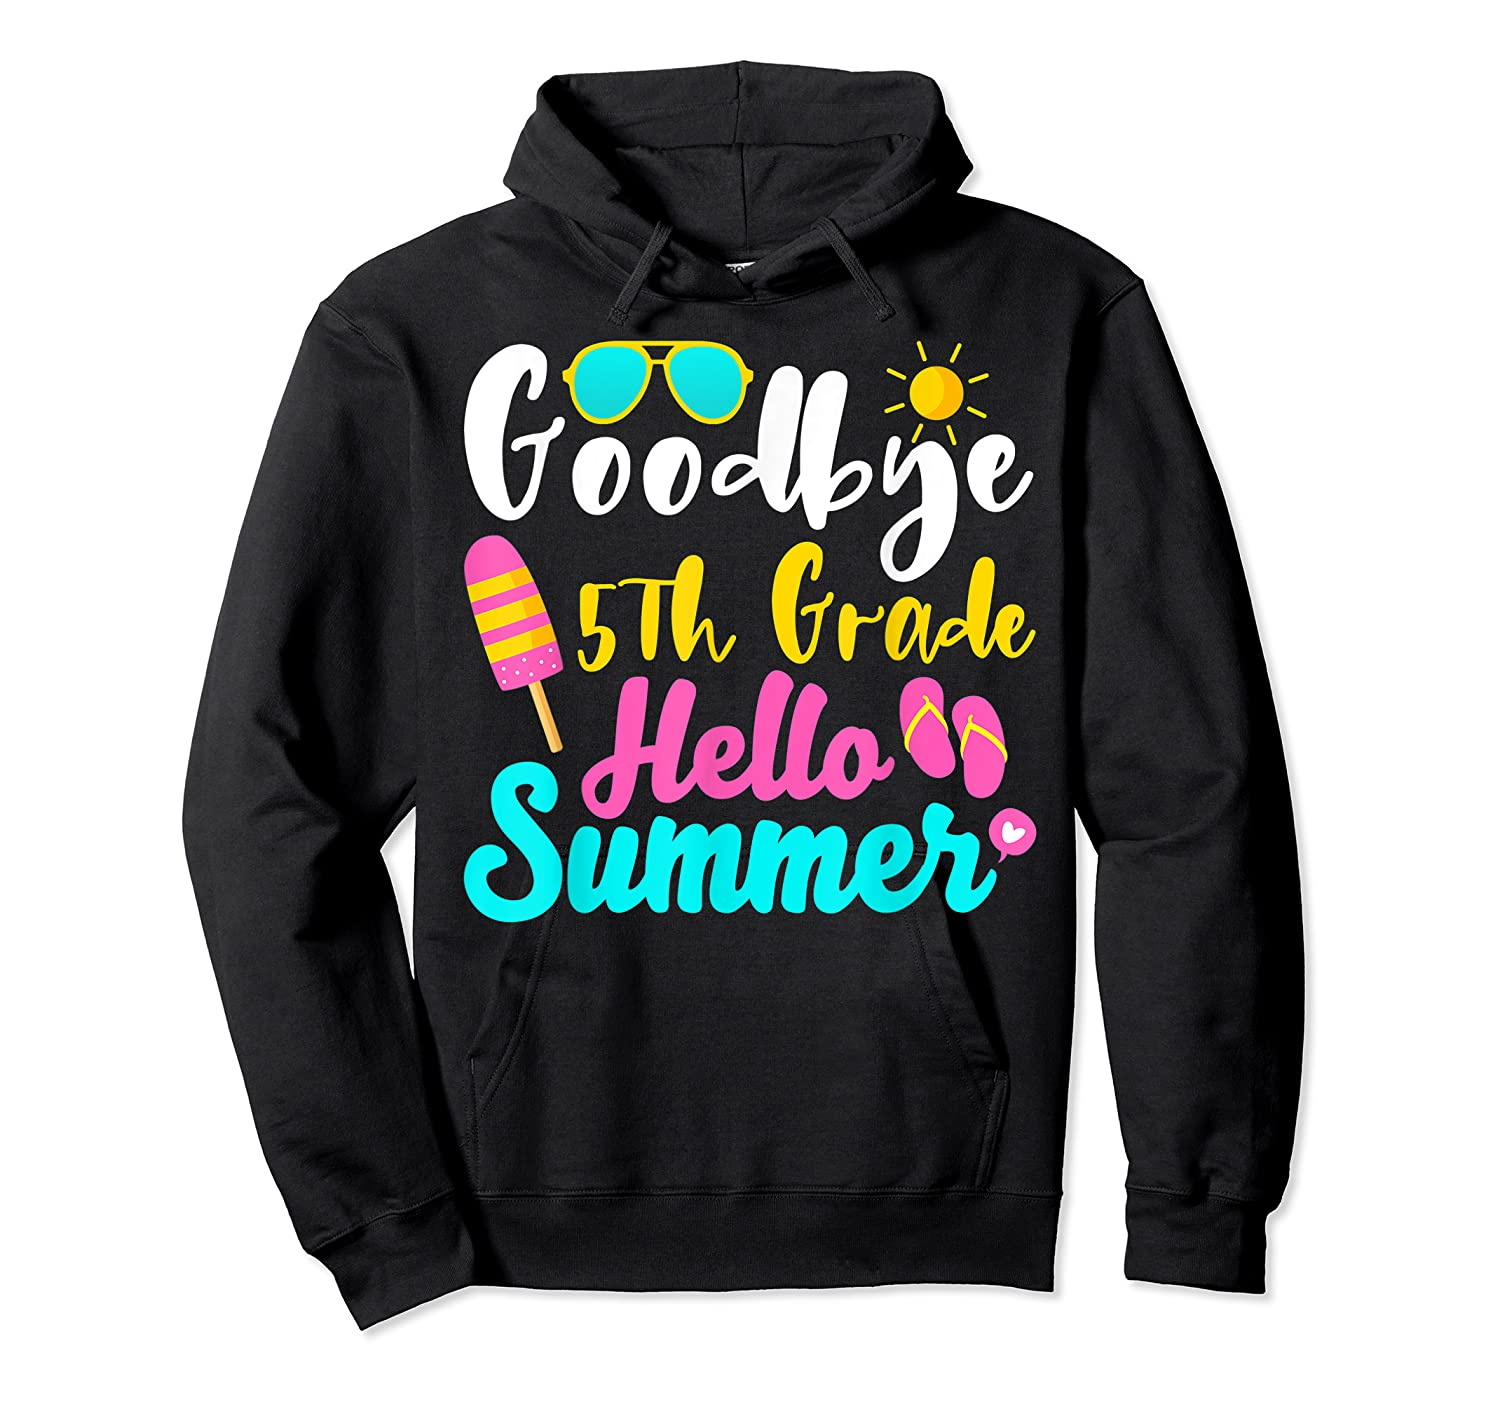 Goodbye 5th Grade Hello Summer Funny Teas Gifts Shirts Unisex Pullover Hoodie